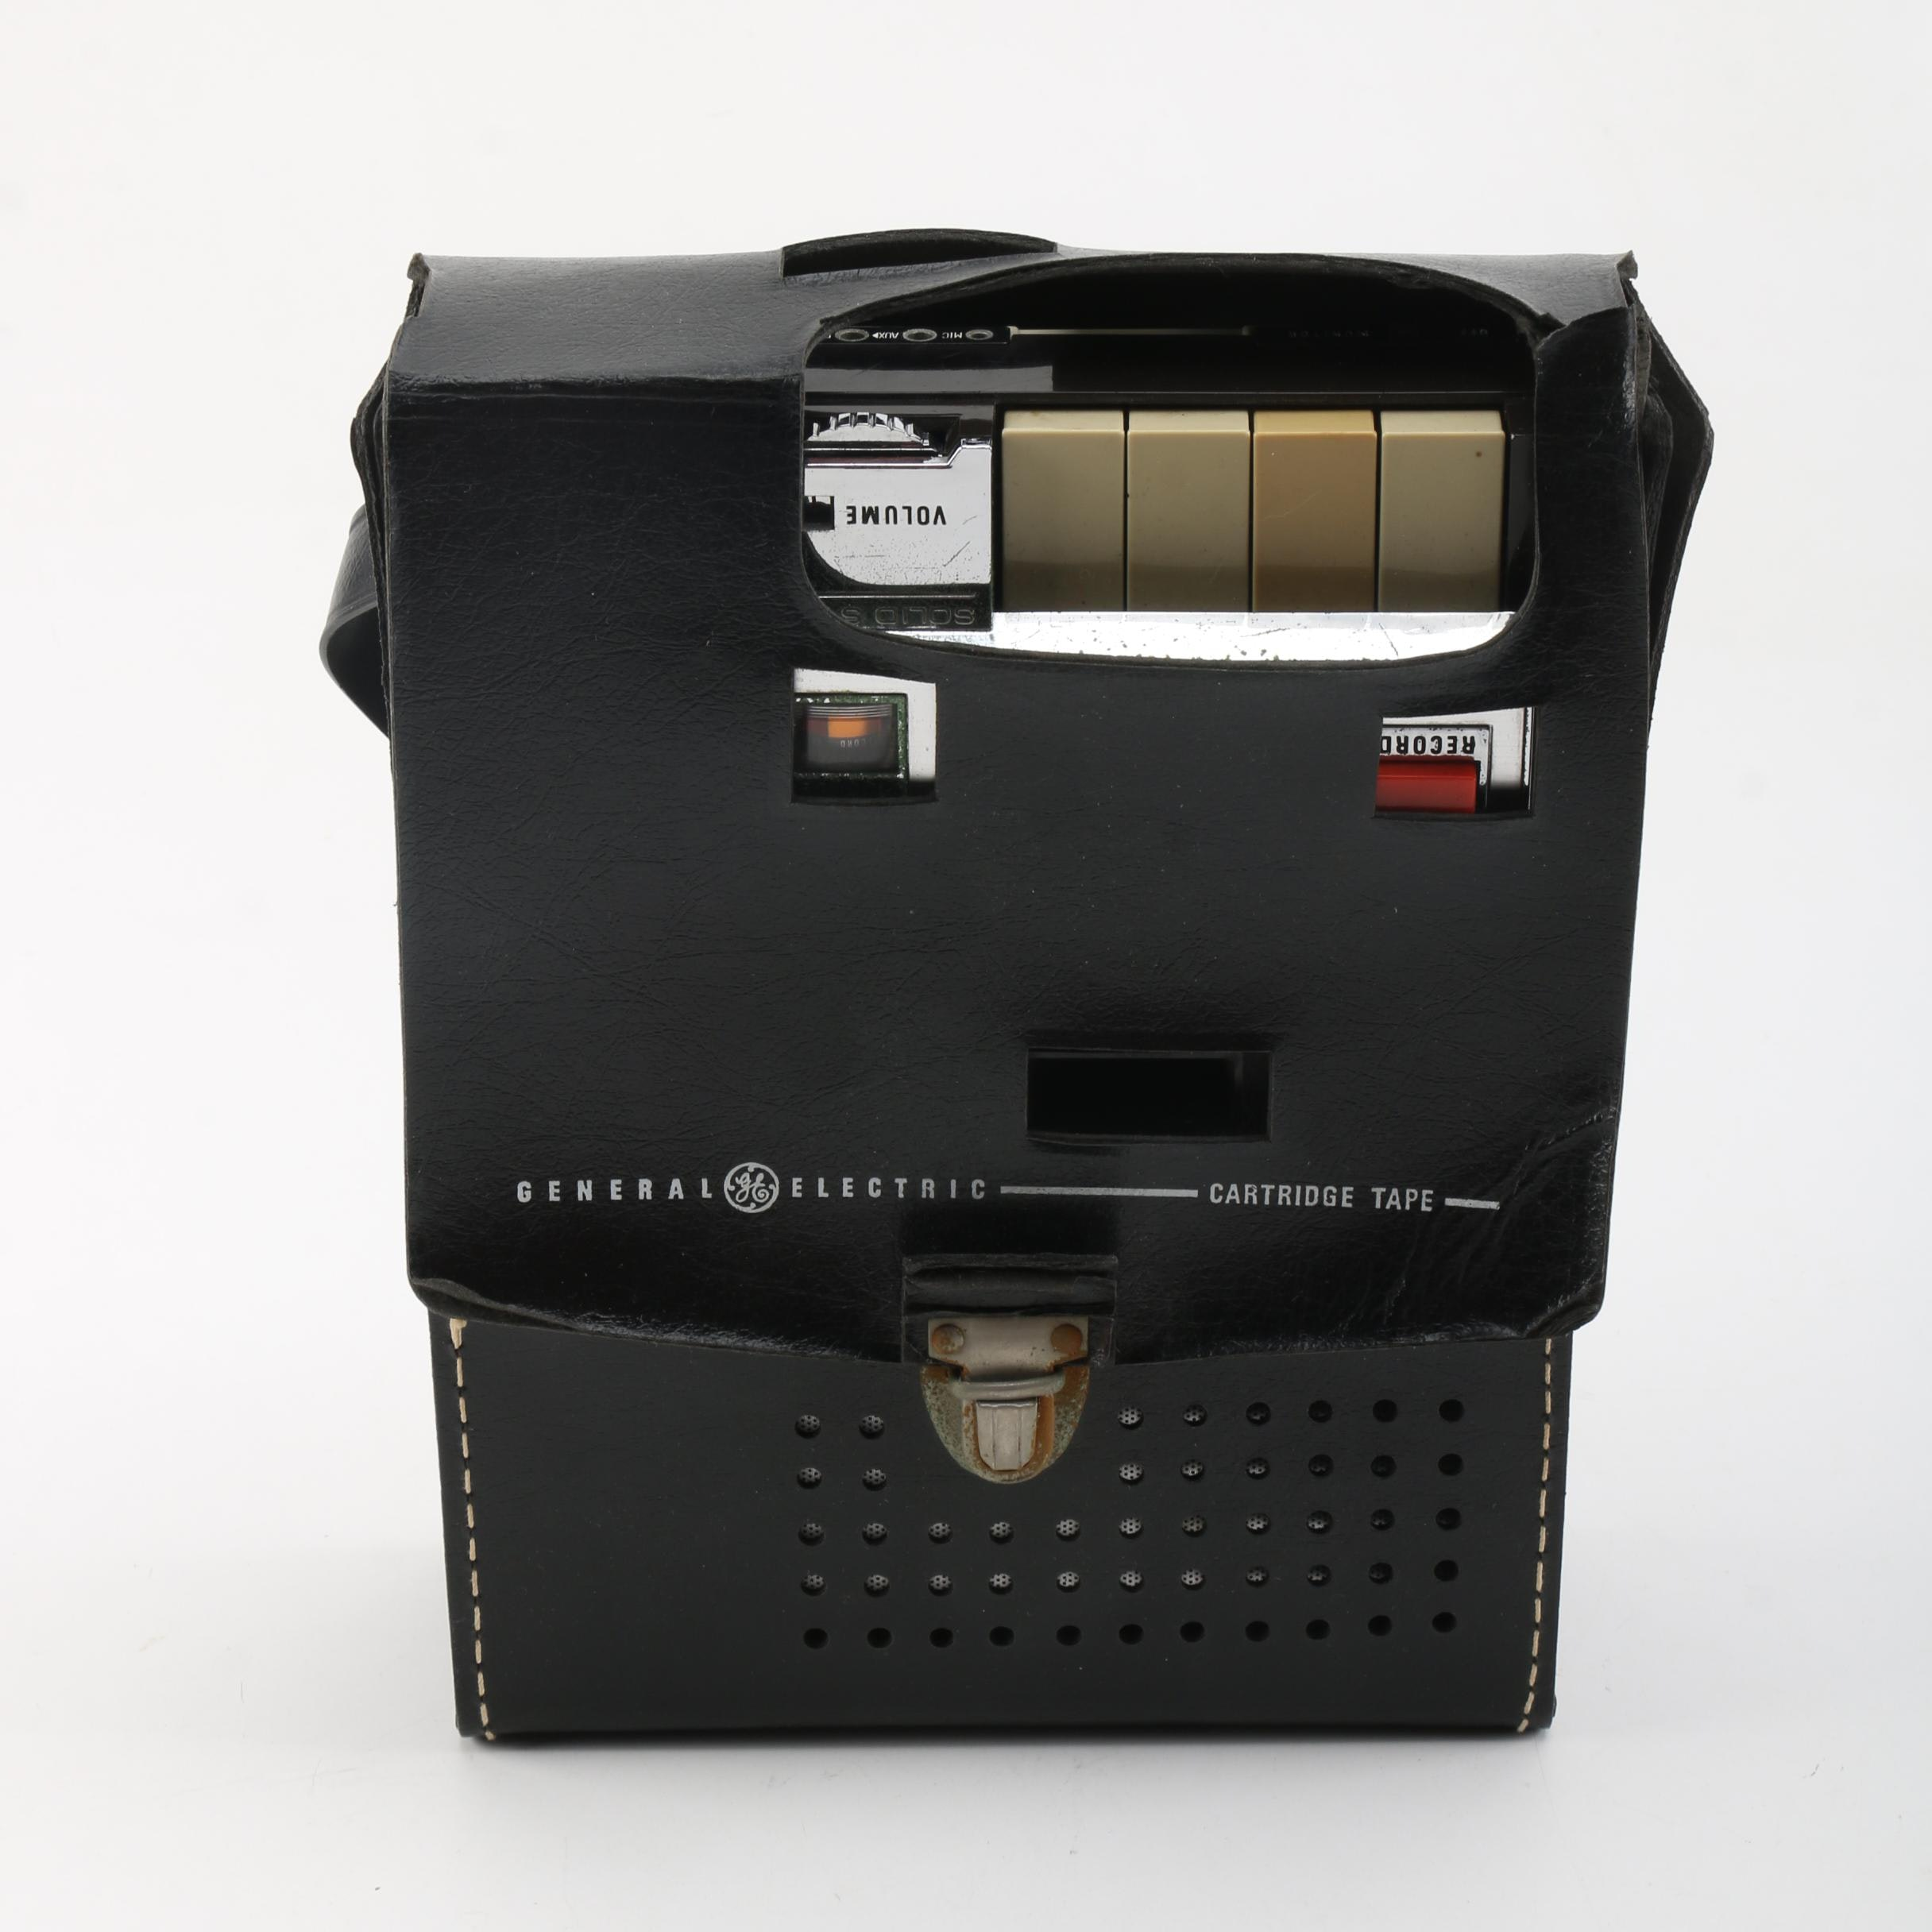 GE M8300 Model Tape Recorder